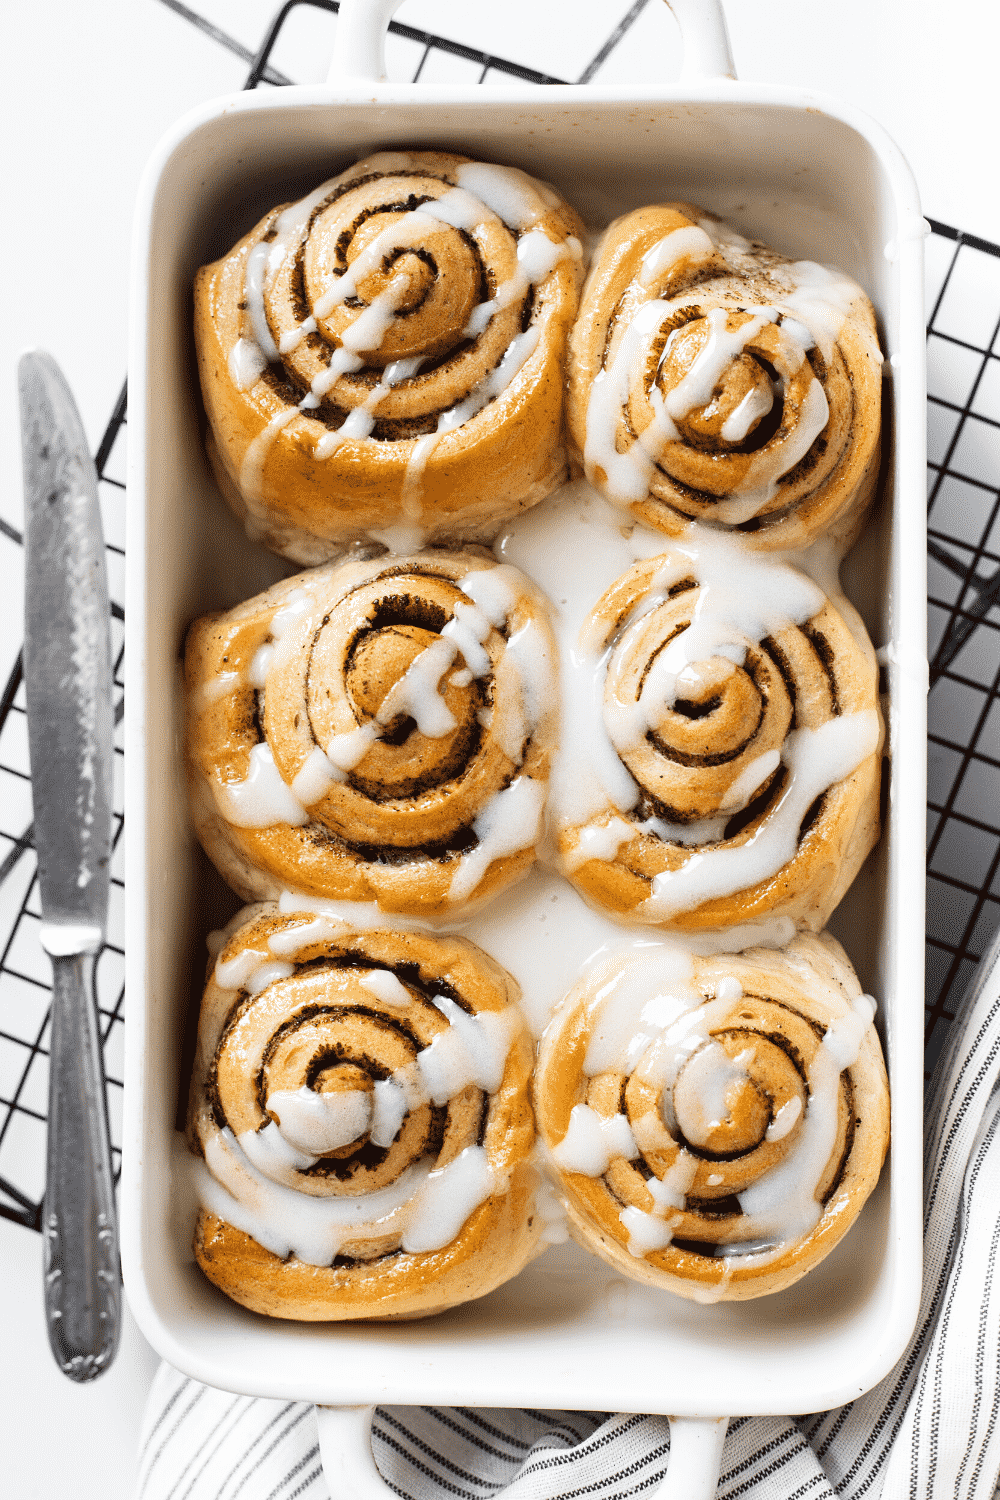 A white baking dish with six cinnamon rolls covered in icing. The baking dish is on a black wire rack on a white counter.